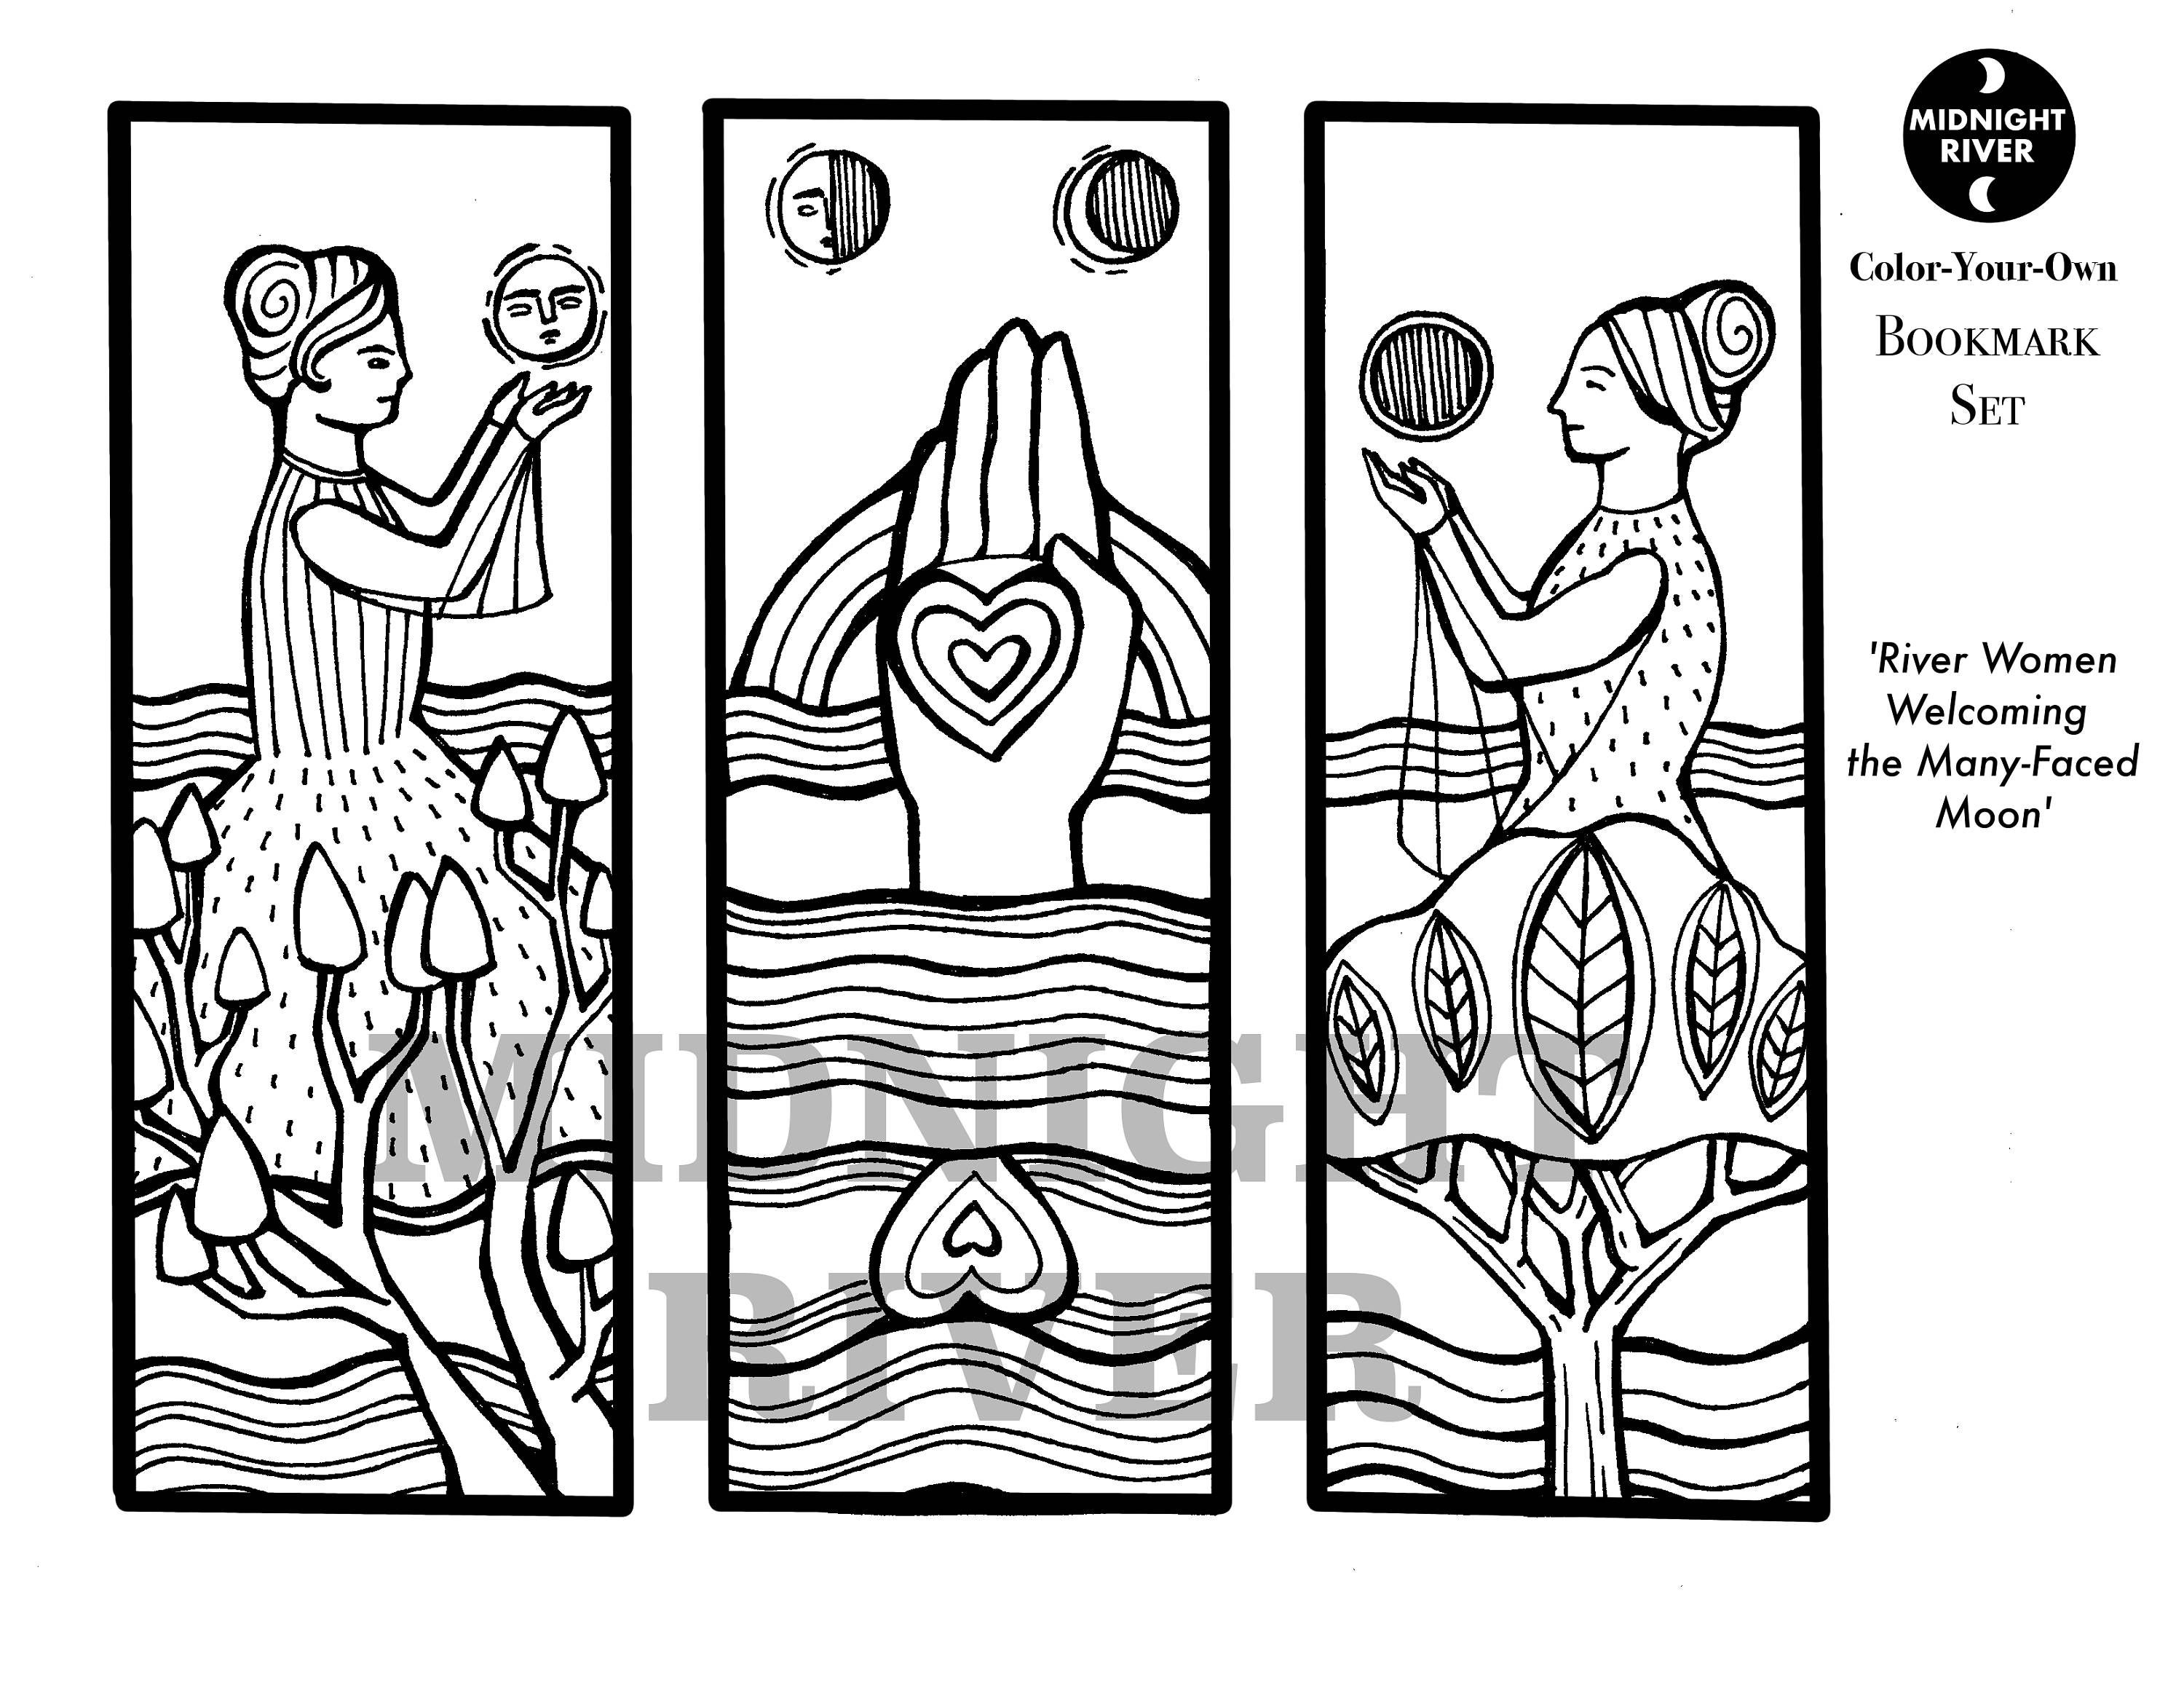 Moon Phase Bookmark Set // Printable Coloring Page // River Women Welcoming the Many-Faced Moon // Downloadable PDF